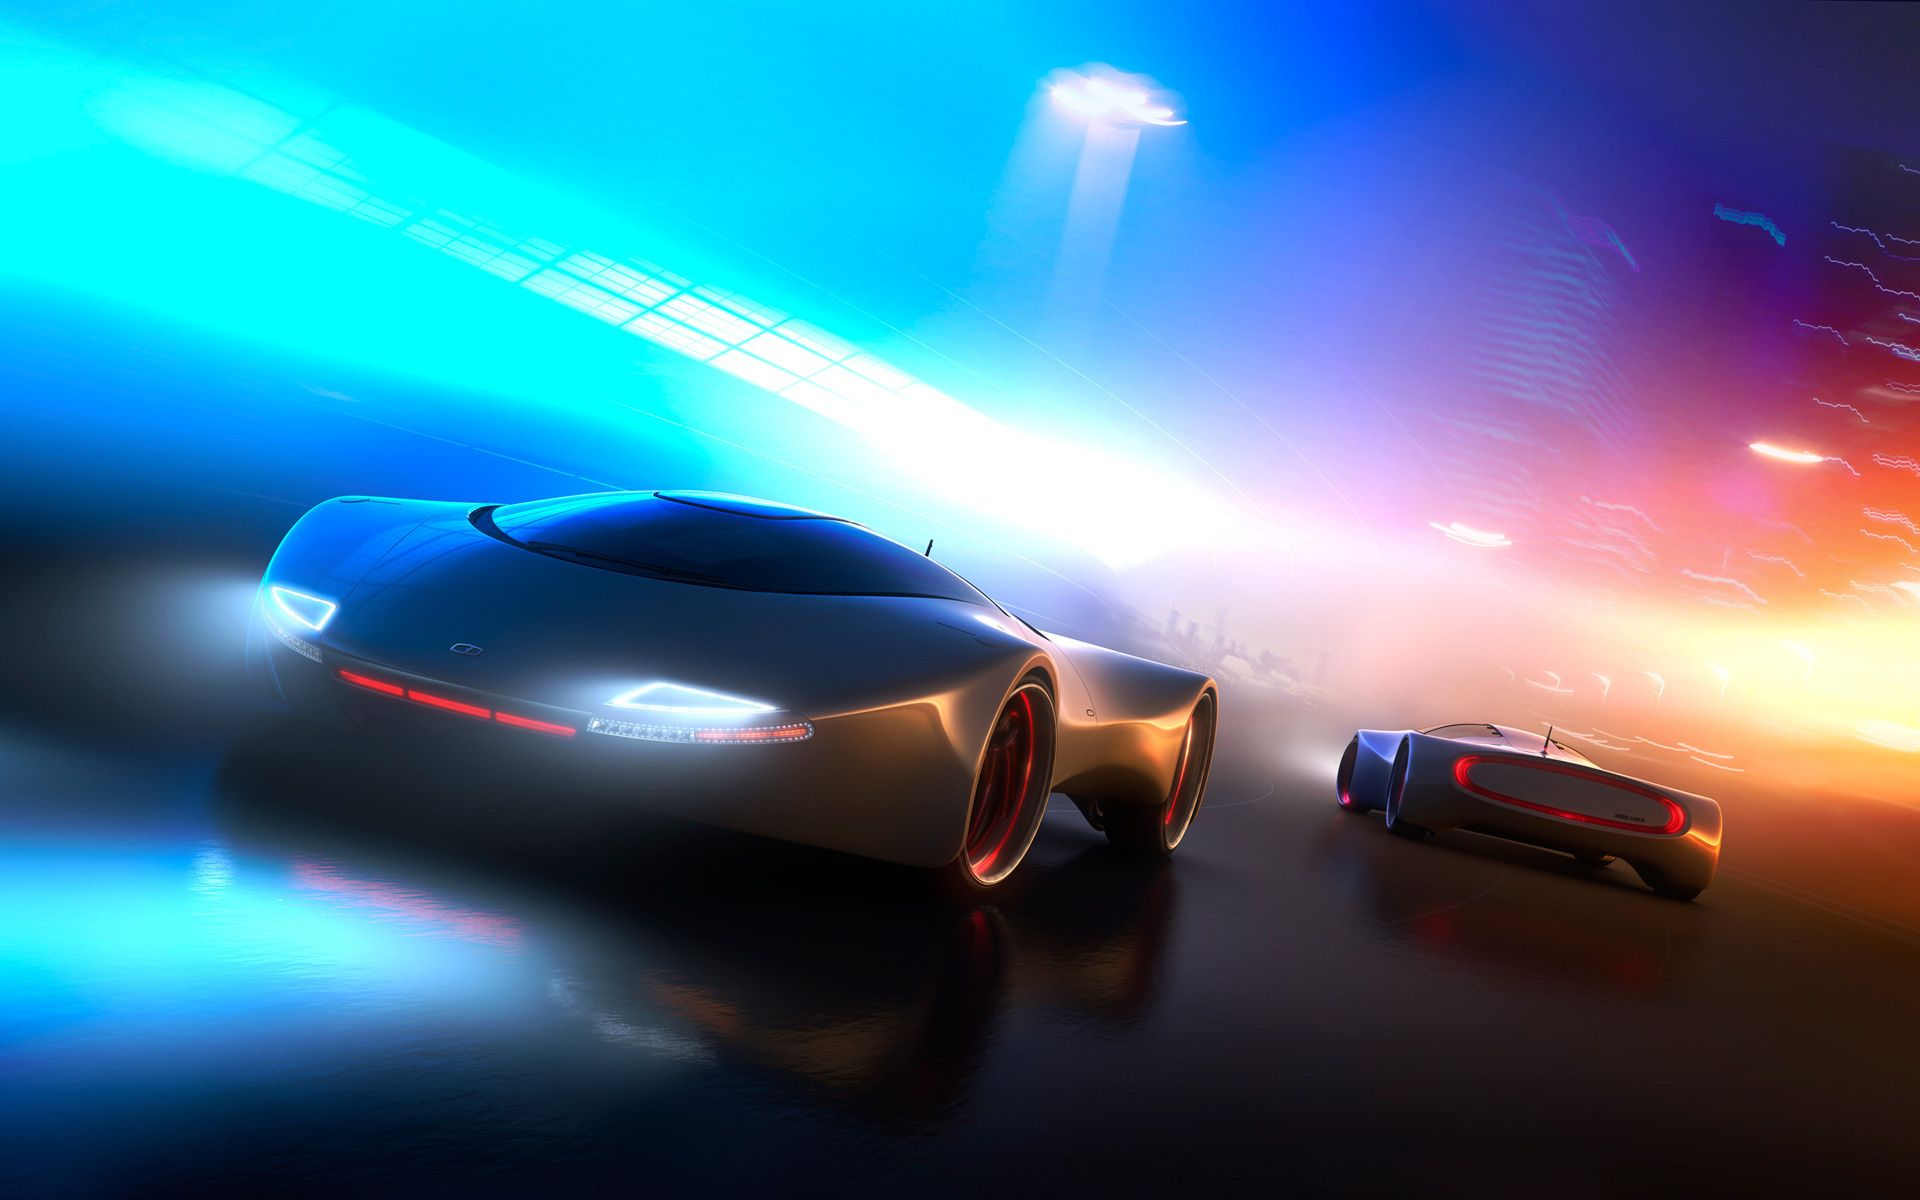 Neon Light Concept Car Cats Free Hd Wallpapers Concept Cars Futuristic Cars Car Wallpapers